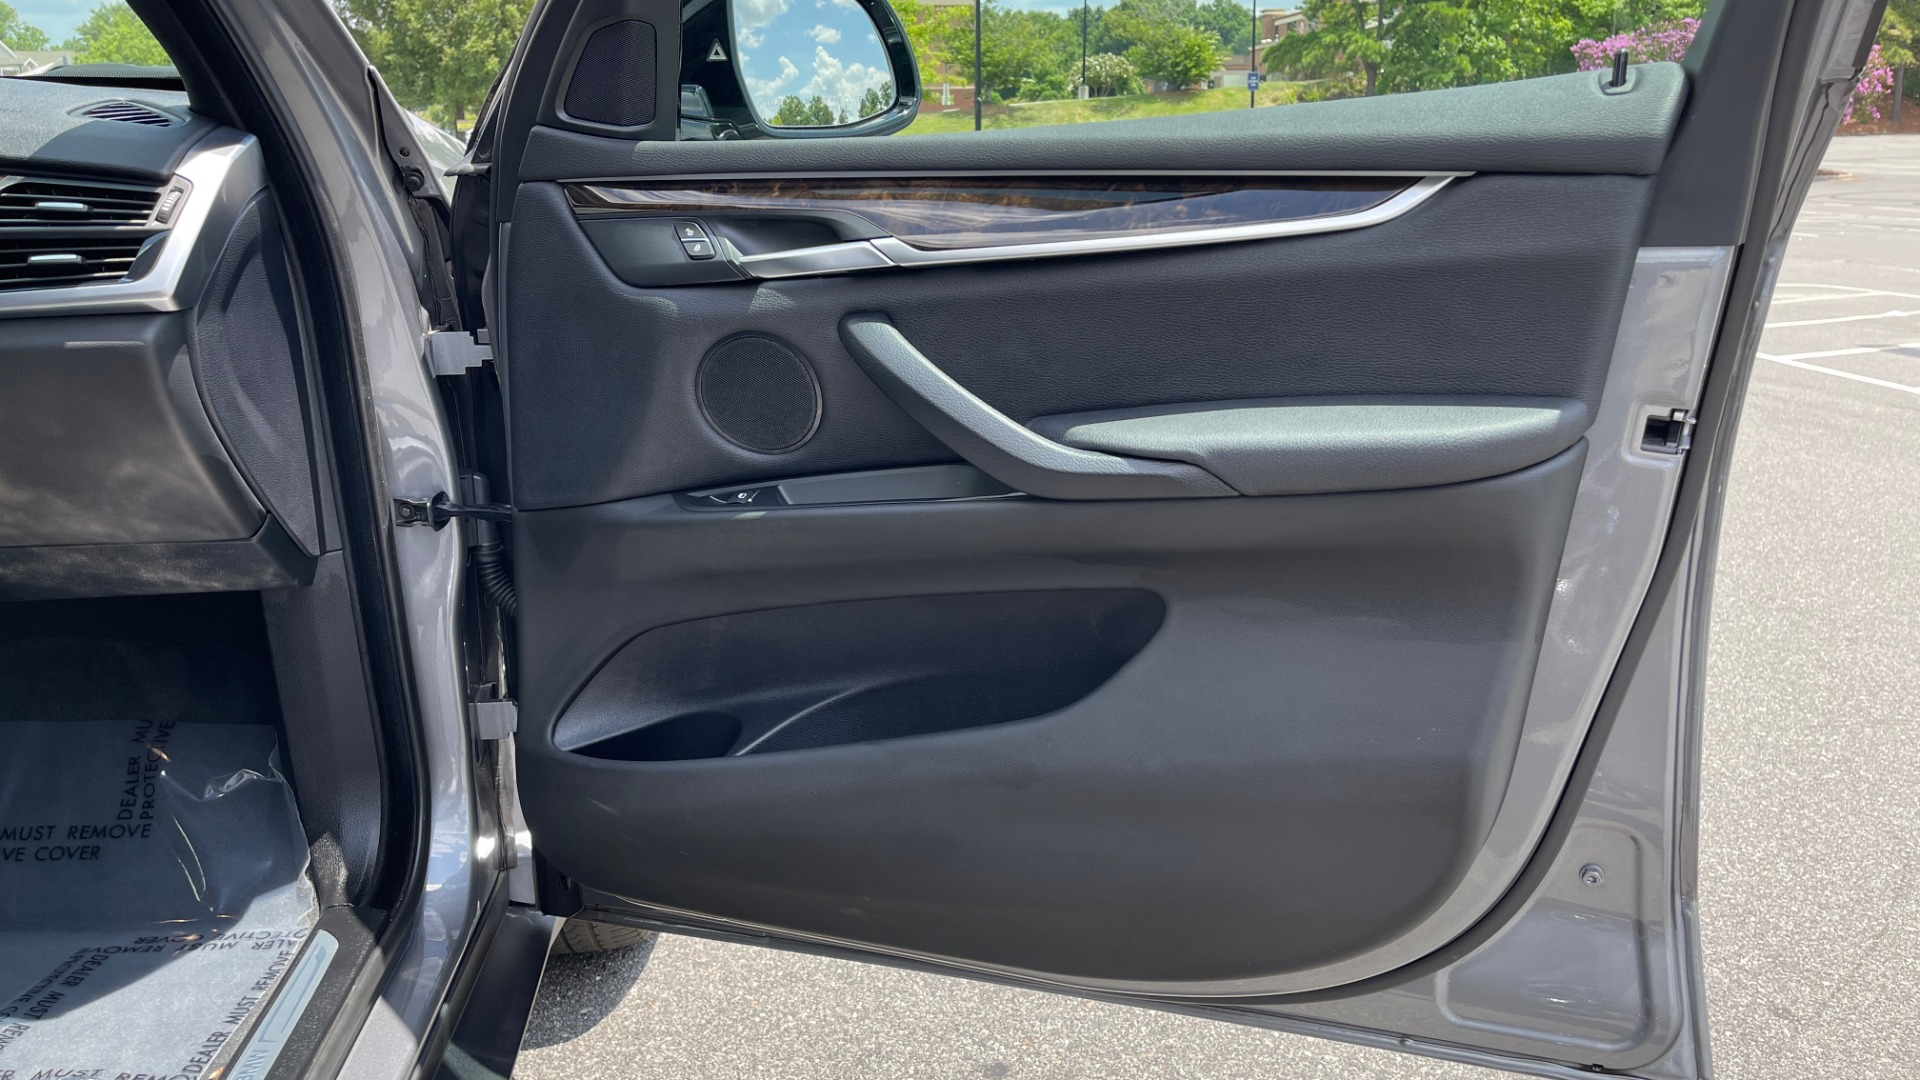 Used 2018 BMW X5 XDRIVE35I PREMIUM / DRVR ASST / WIRELESS CHARGING / CAMERAS for sale $46,995 at Formula Imports in Charlotte NC 28227 77